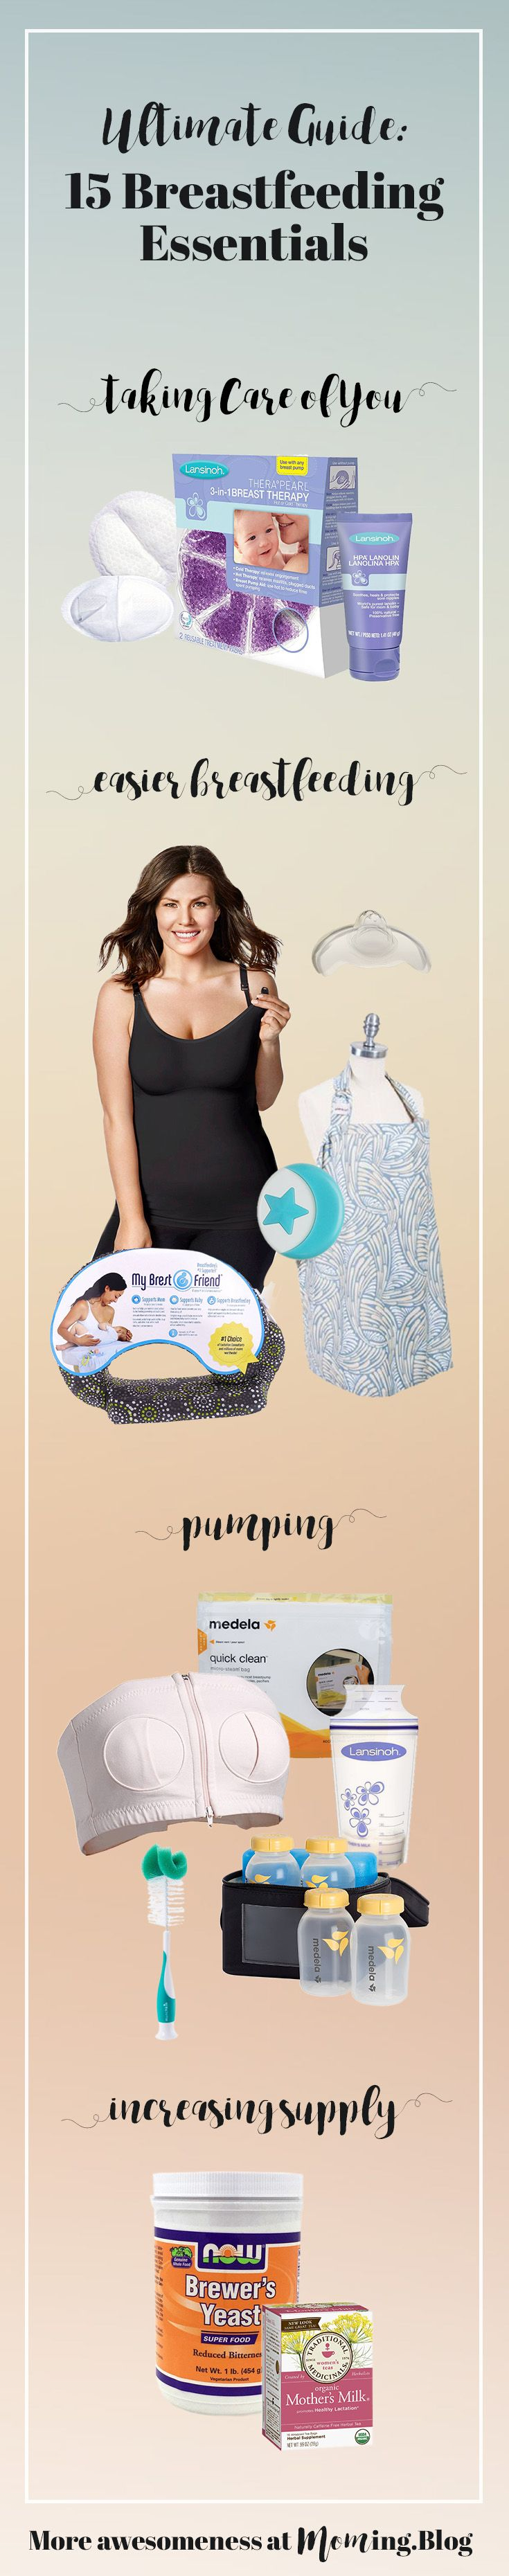 15 Breastfeeding Essentials   In just a few days it will be World  Week and in celebration of every rockstar breastfeeding mom, I wanted to share 15 invaluable breastfeeding products.